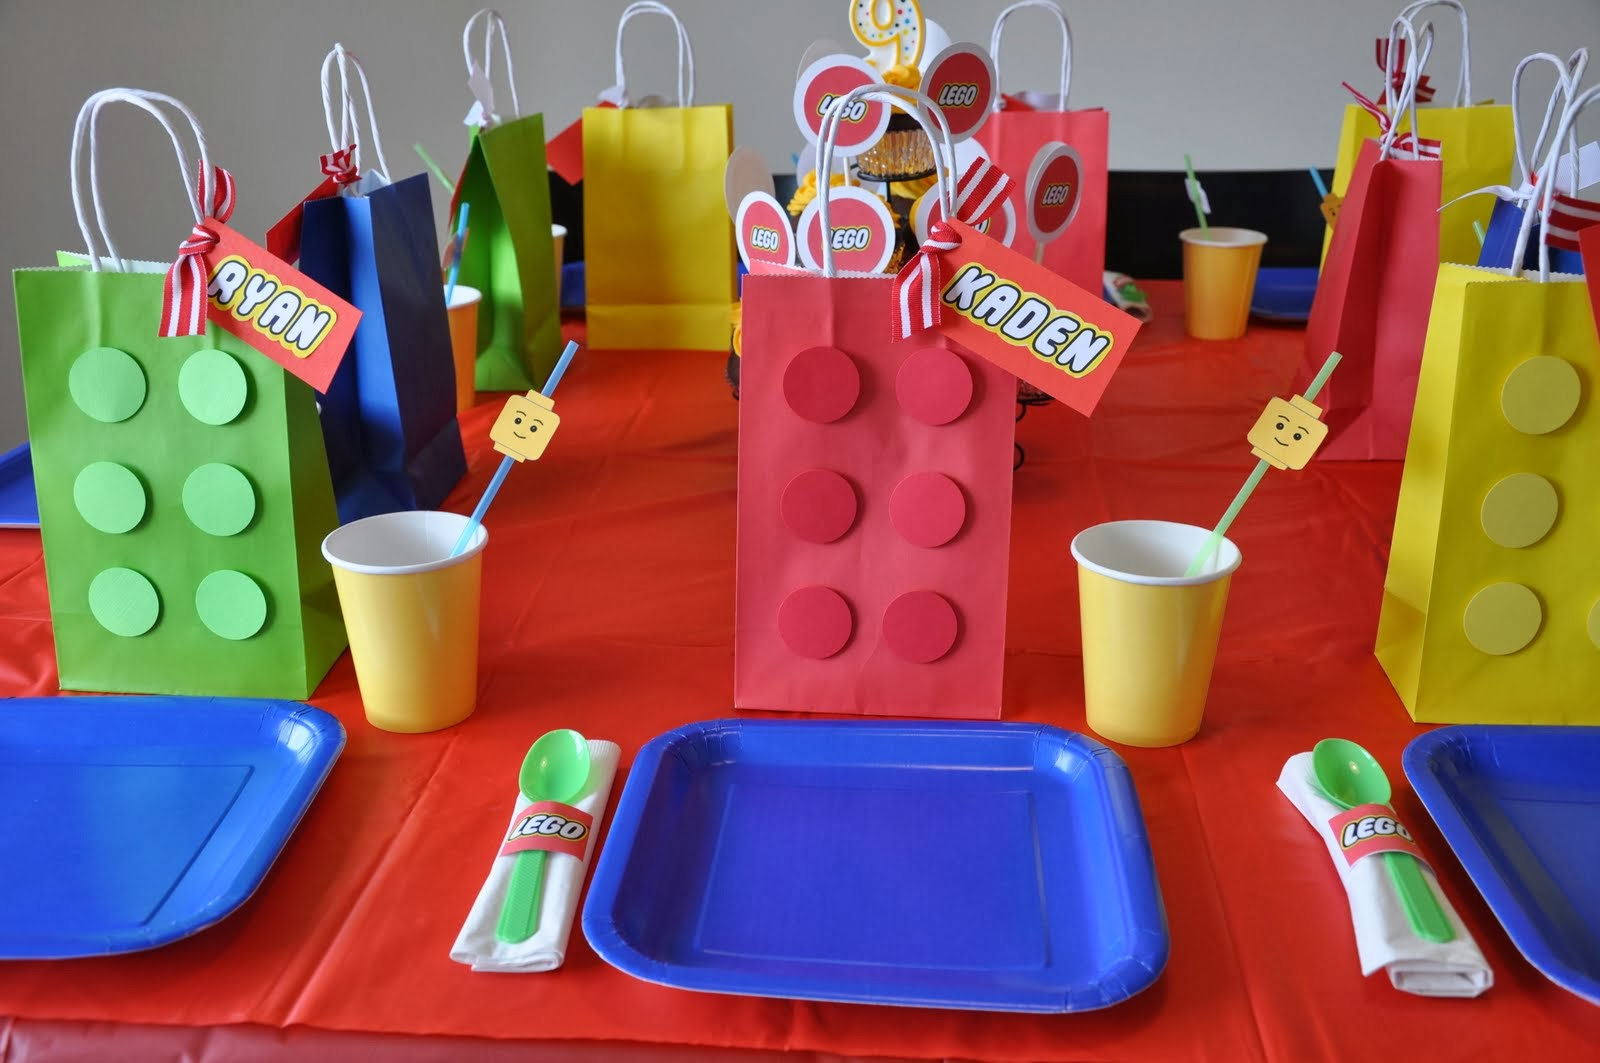 DIY Table Decoration for a Lego Party. - Oh My Fiesta! for ...